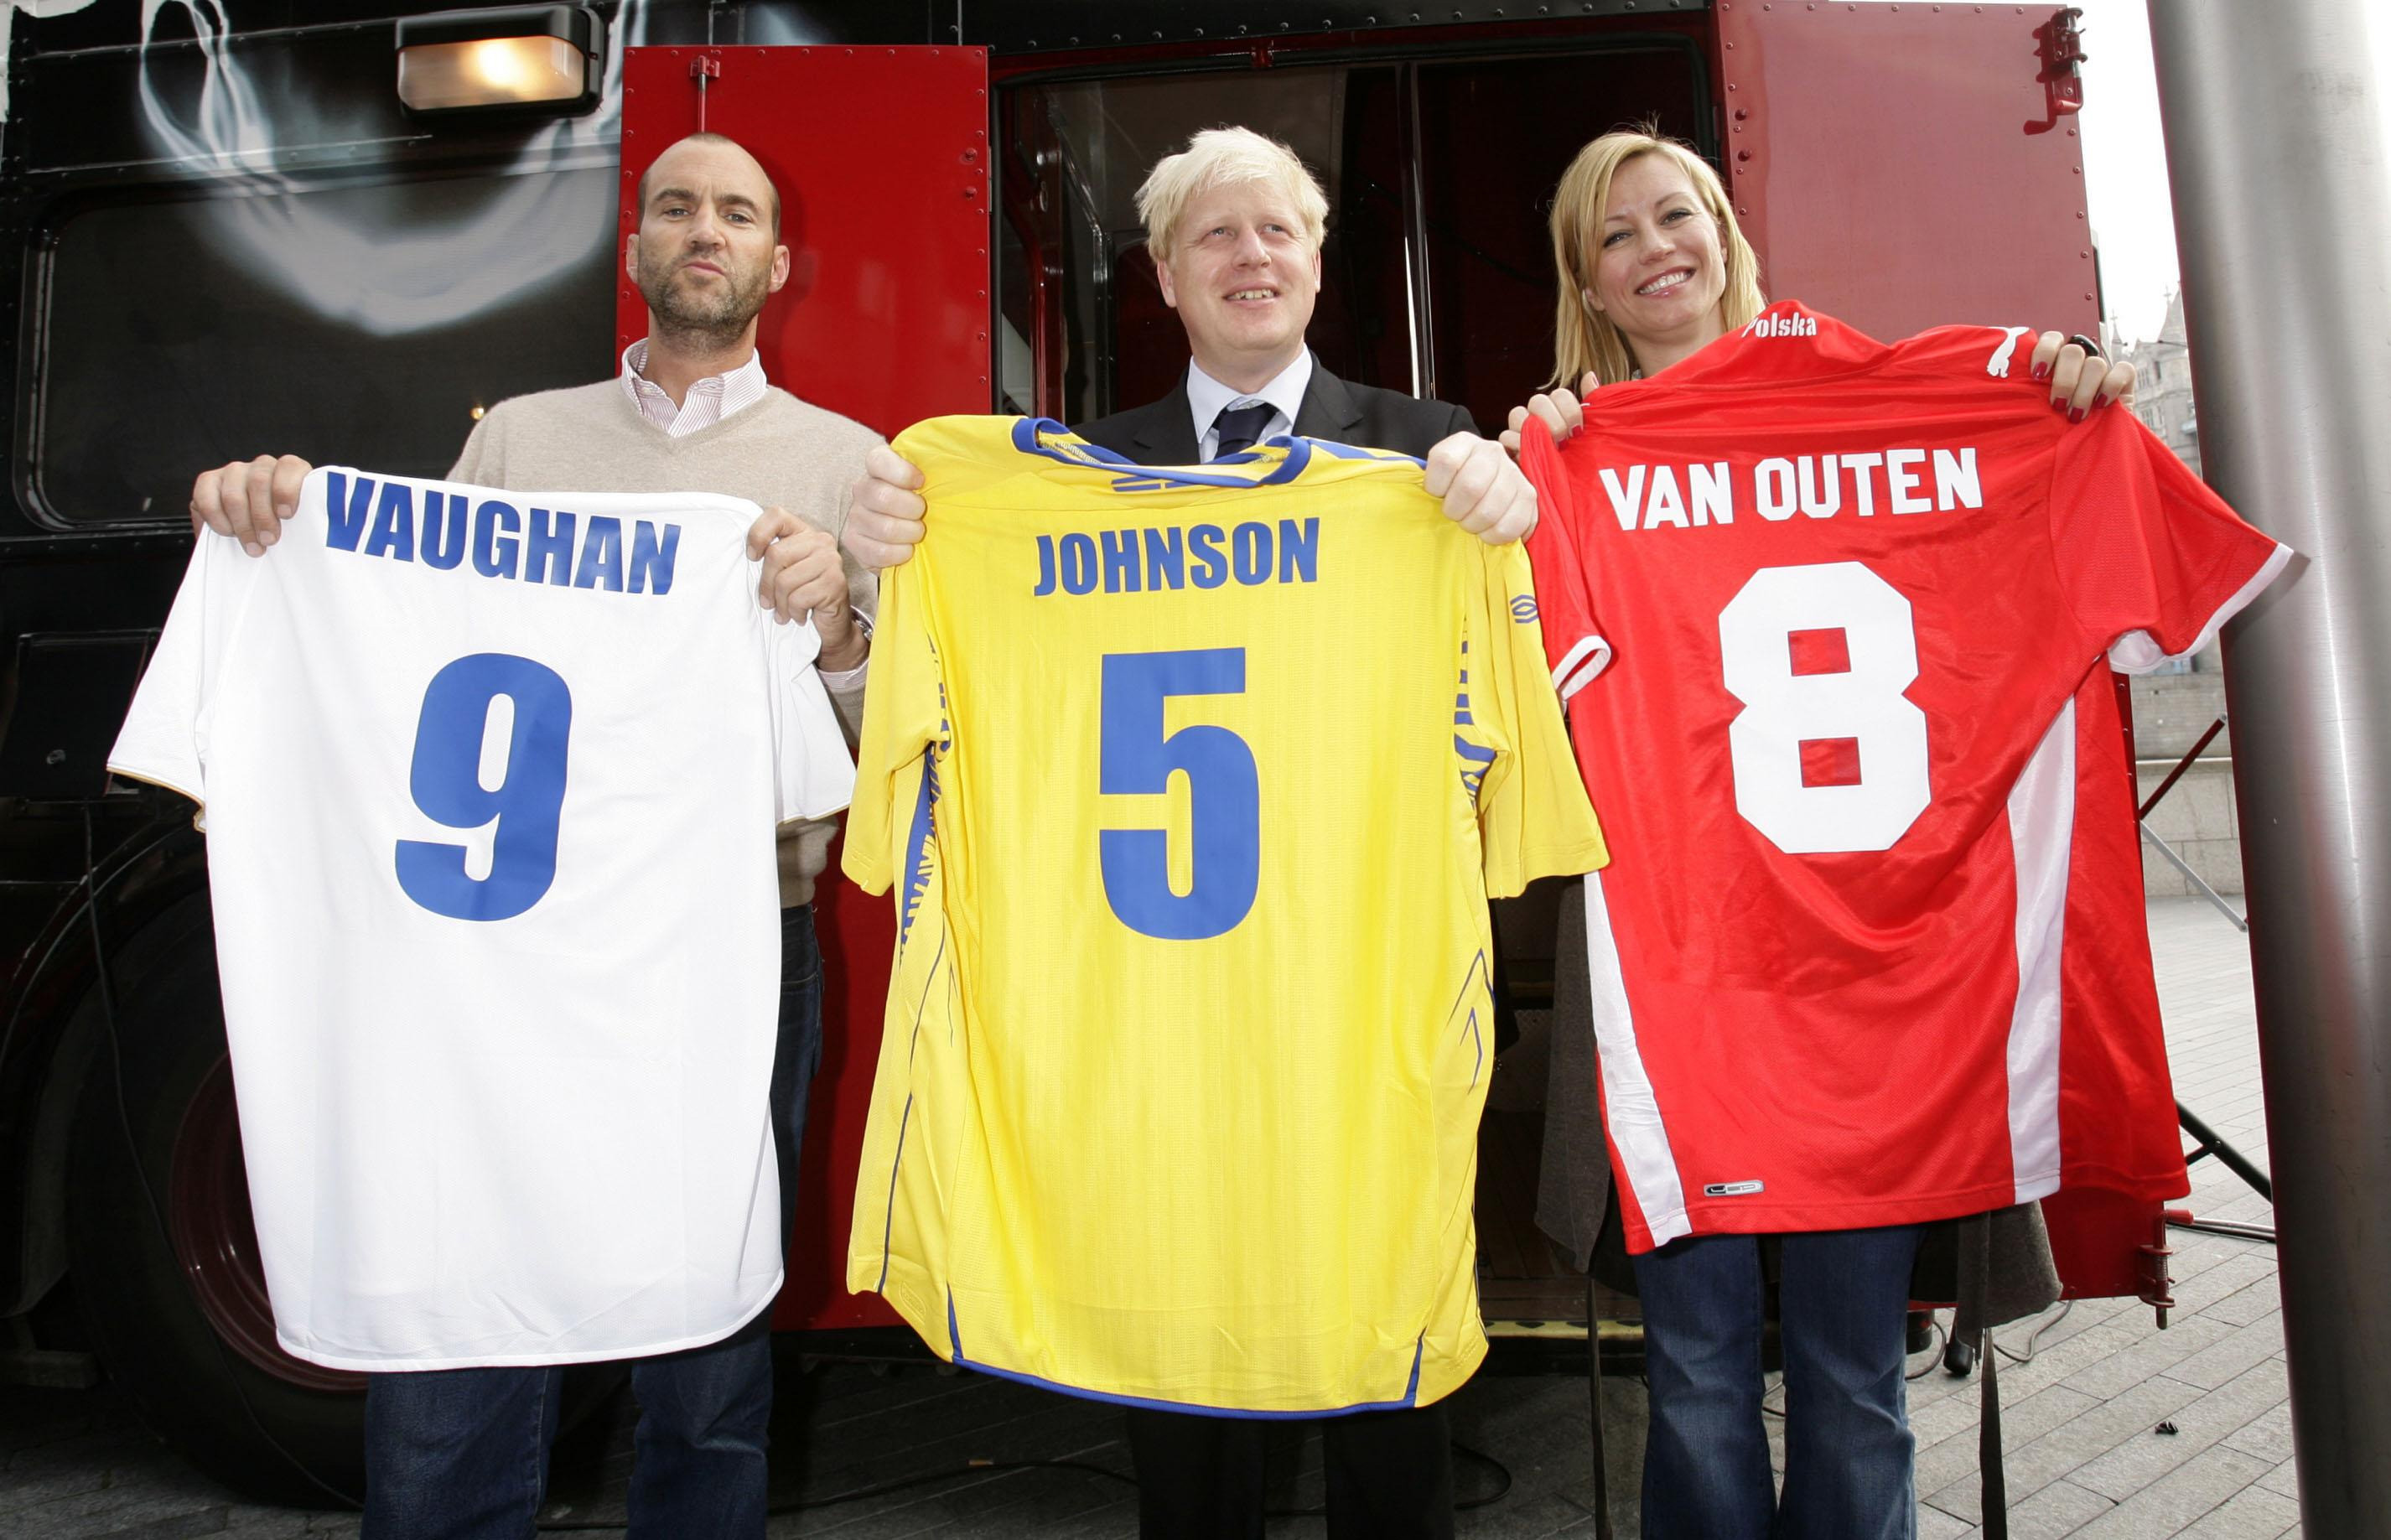 Mayor of London Boris Johnson (centre) with Capital FM Breakfast show DJ Johnny Vaughan (left) and Denise Van Outen (right) on a Routemaster bus at City Hall in London, holding the shirts of Euro 2008 football teams (left to right) Russia, Sweden and Poland which they drew from a sweepstake, in the absence of any British interest in the competition.